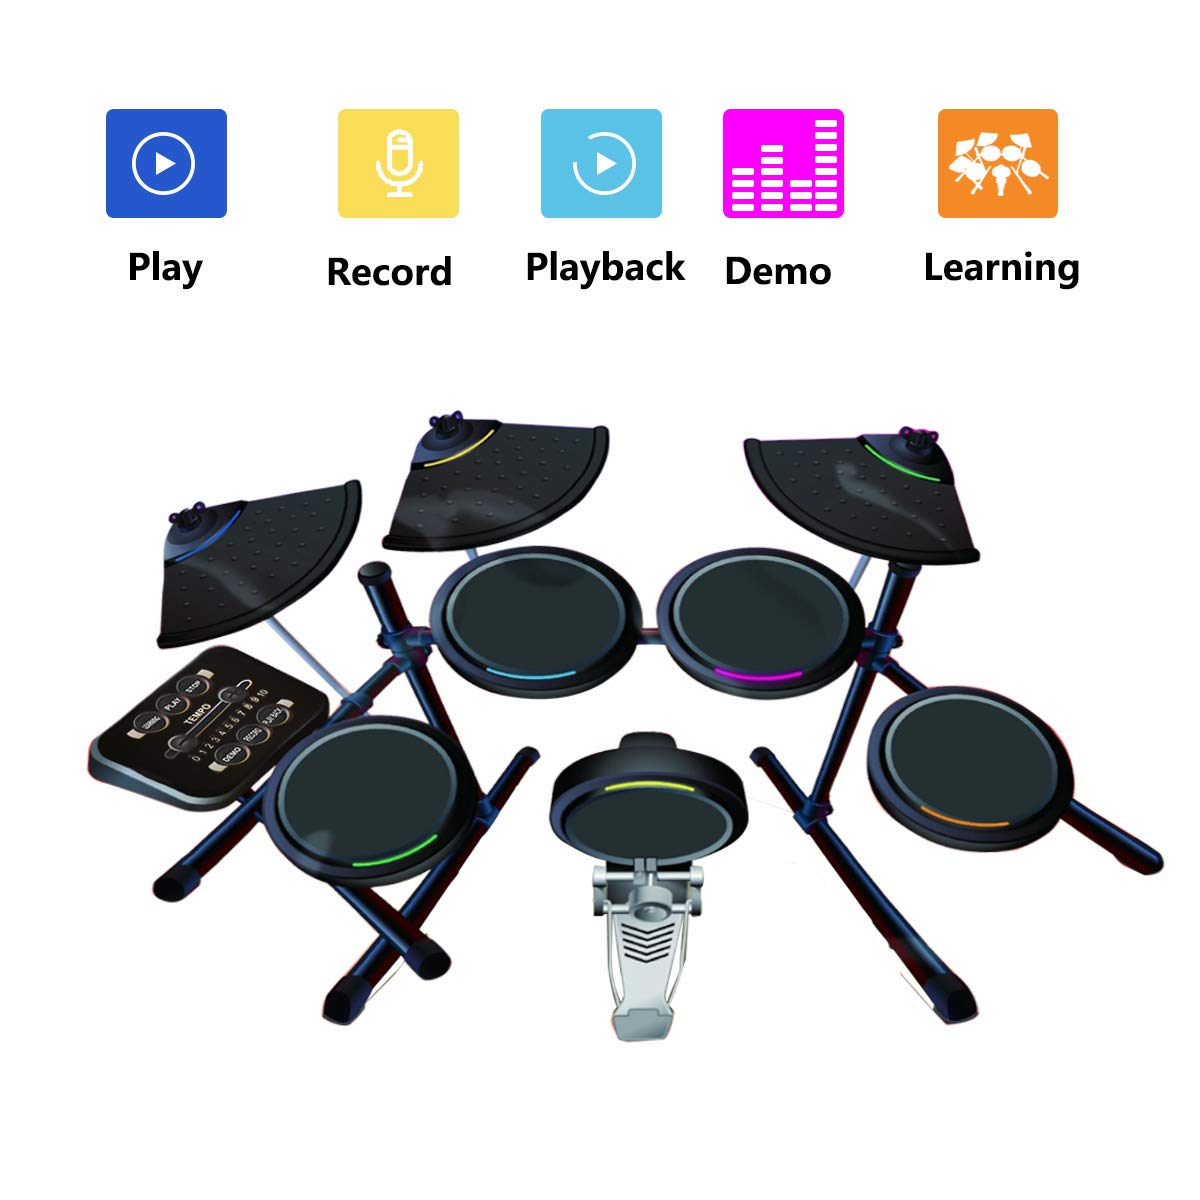 Costzon Electronic Drum Mat, 8 Keys Glowing Music Mat with LED Lights,MP3 Cable, Drumsticks, Support Play - Study-Record - Playback - Demo 5 Modes, Volume Control by Costzon (Image #2)